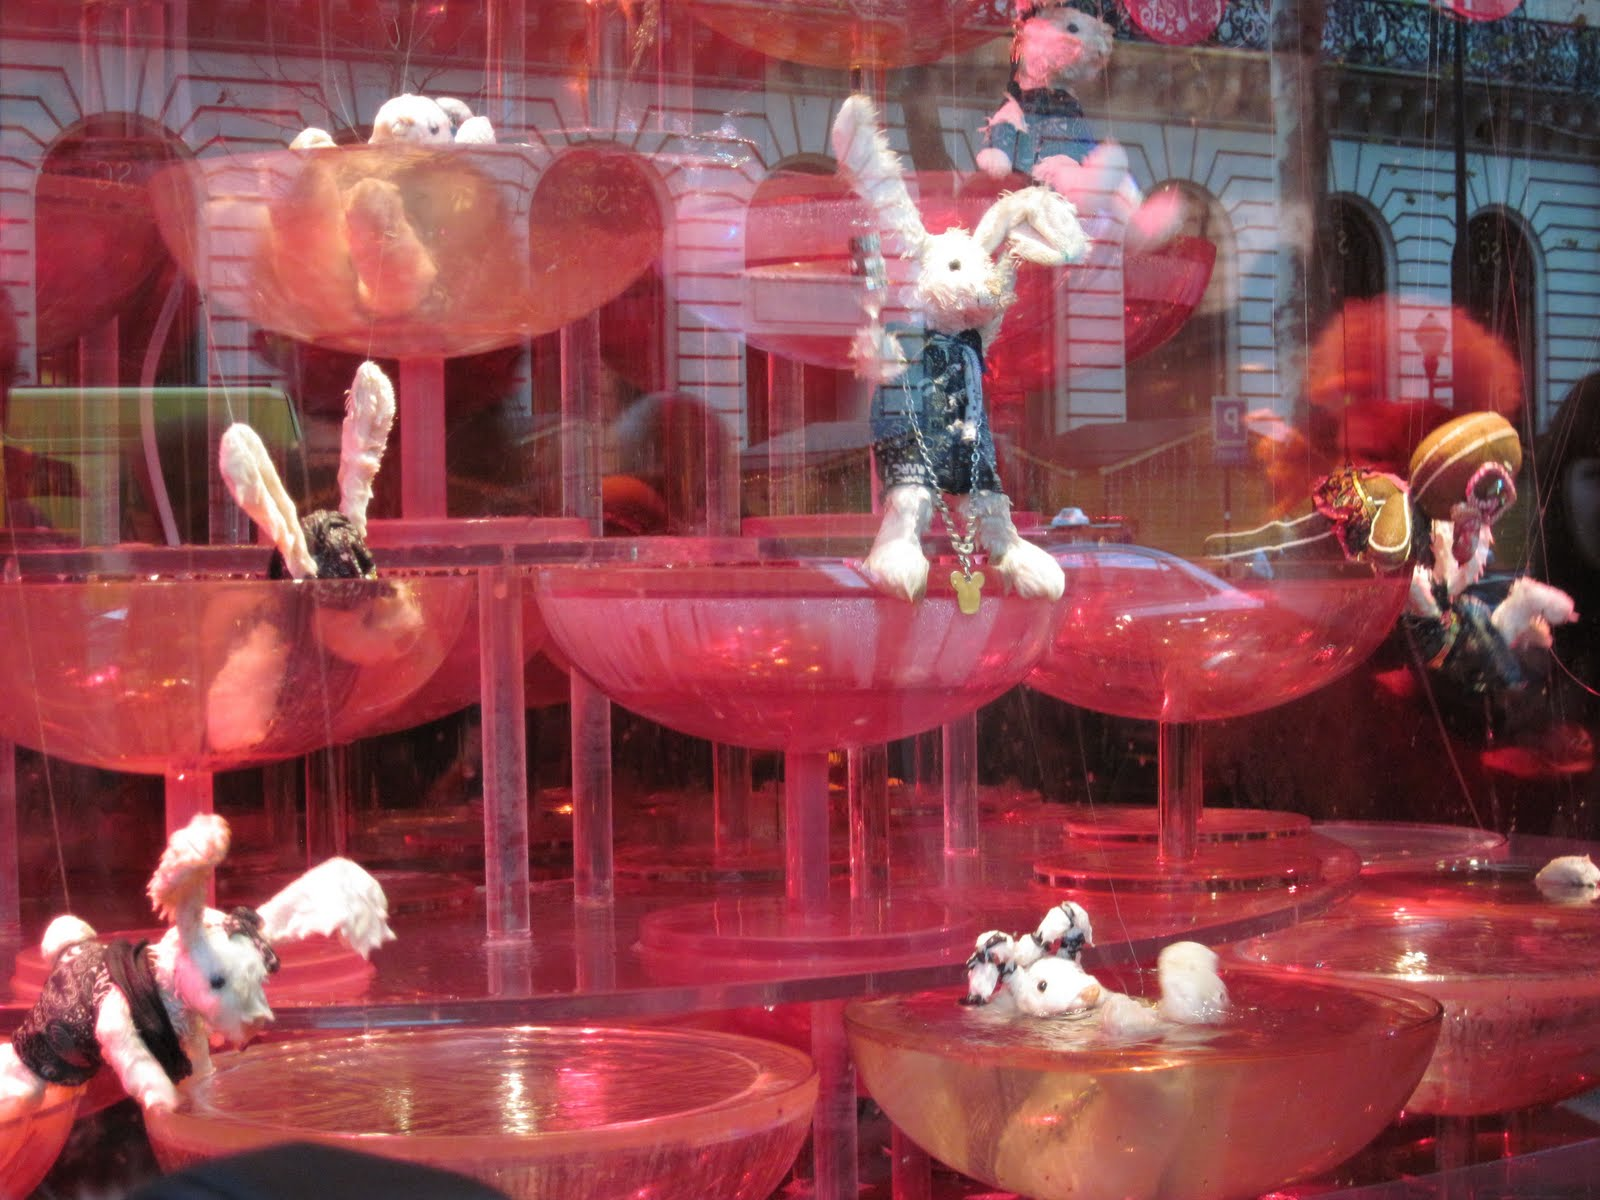 These bunnies playing in the champagne fountain (and splashing, drinking, ...